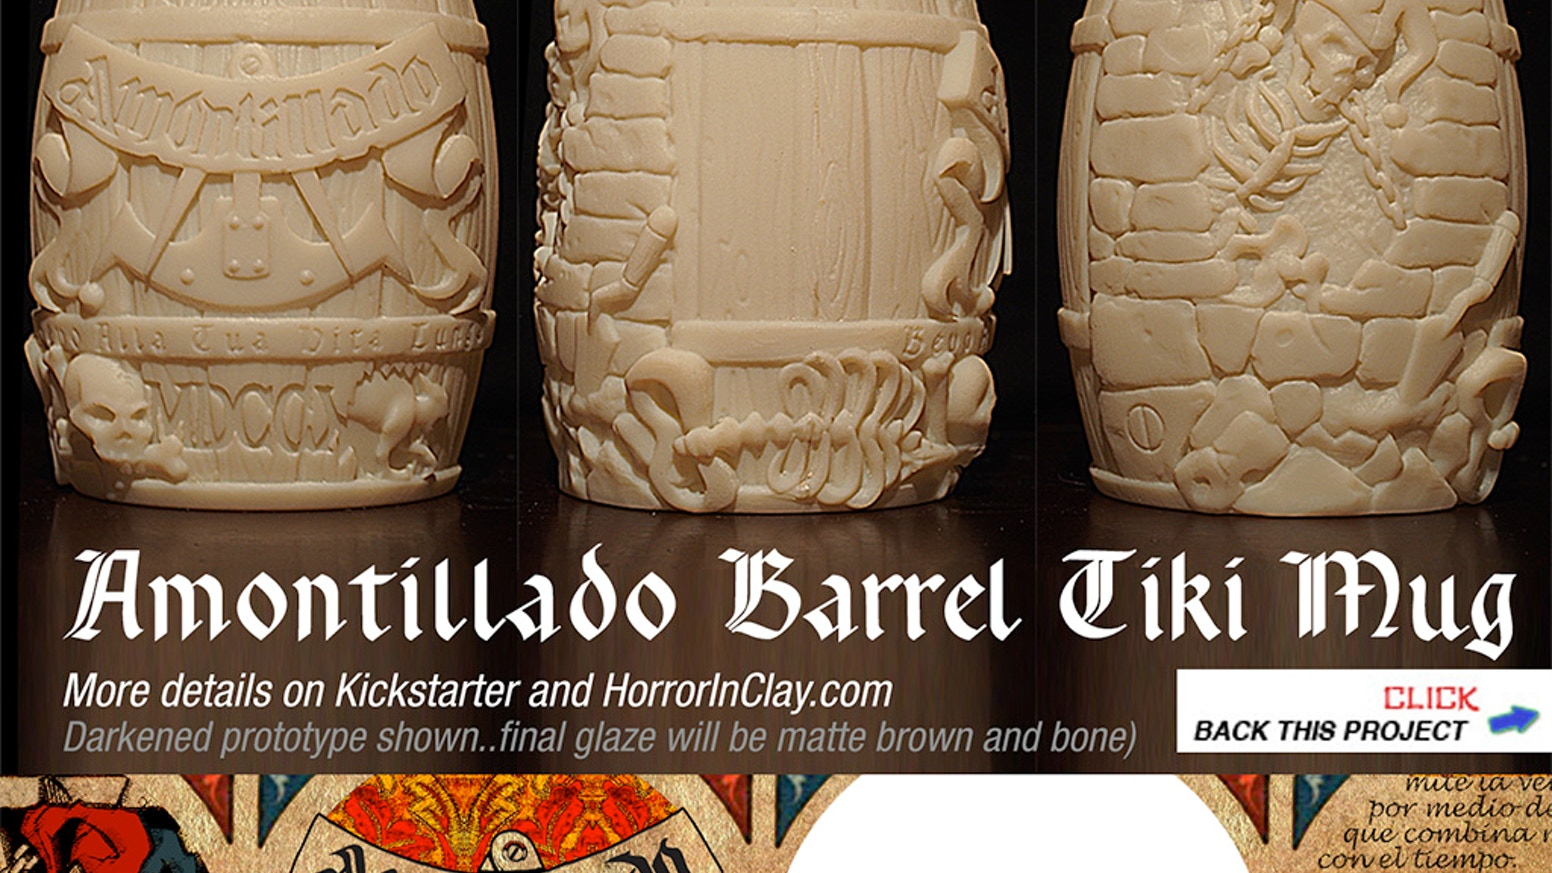 Help us produce this Amontillado Barrel Tiki Mug! For people who are into Poe, horror, vengeance, and skeletons. Oh, and cryptography.